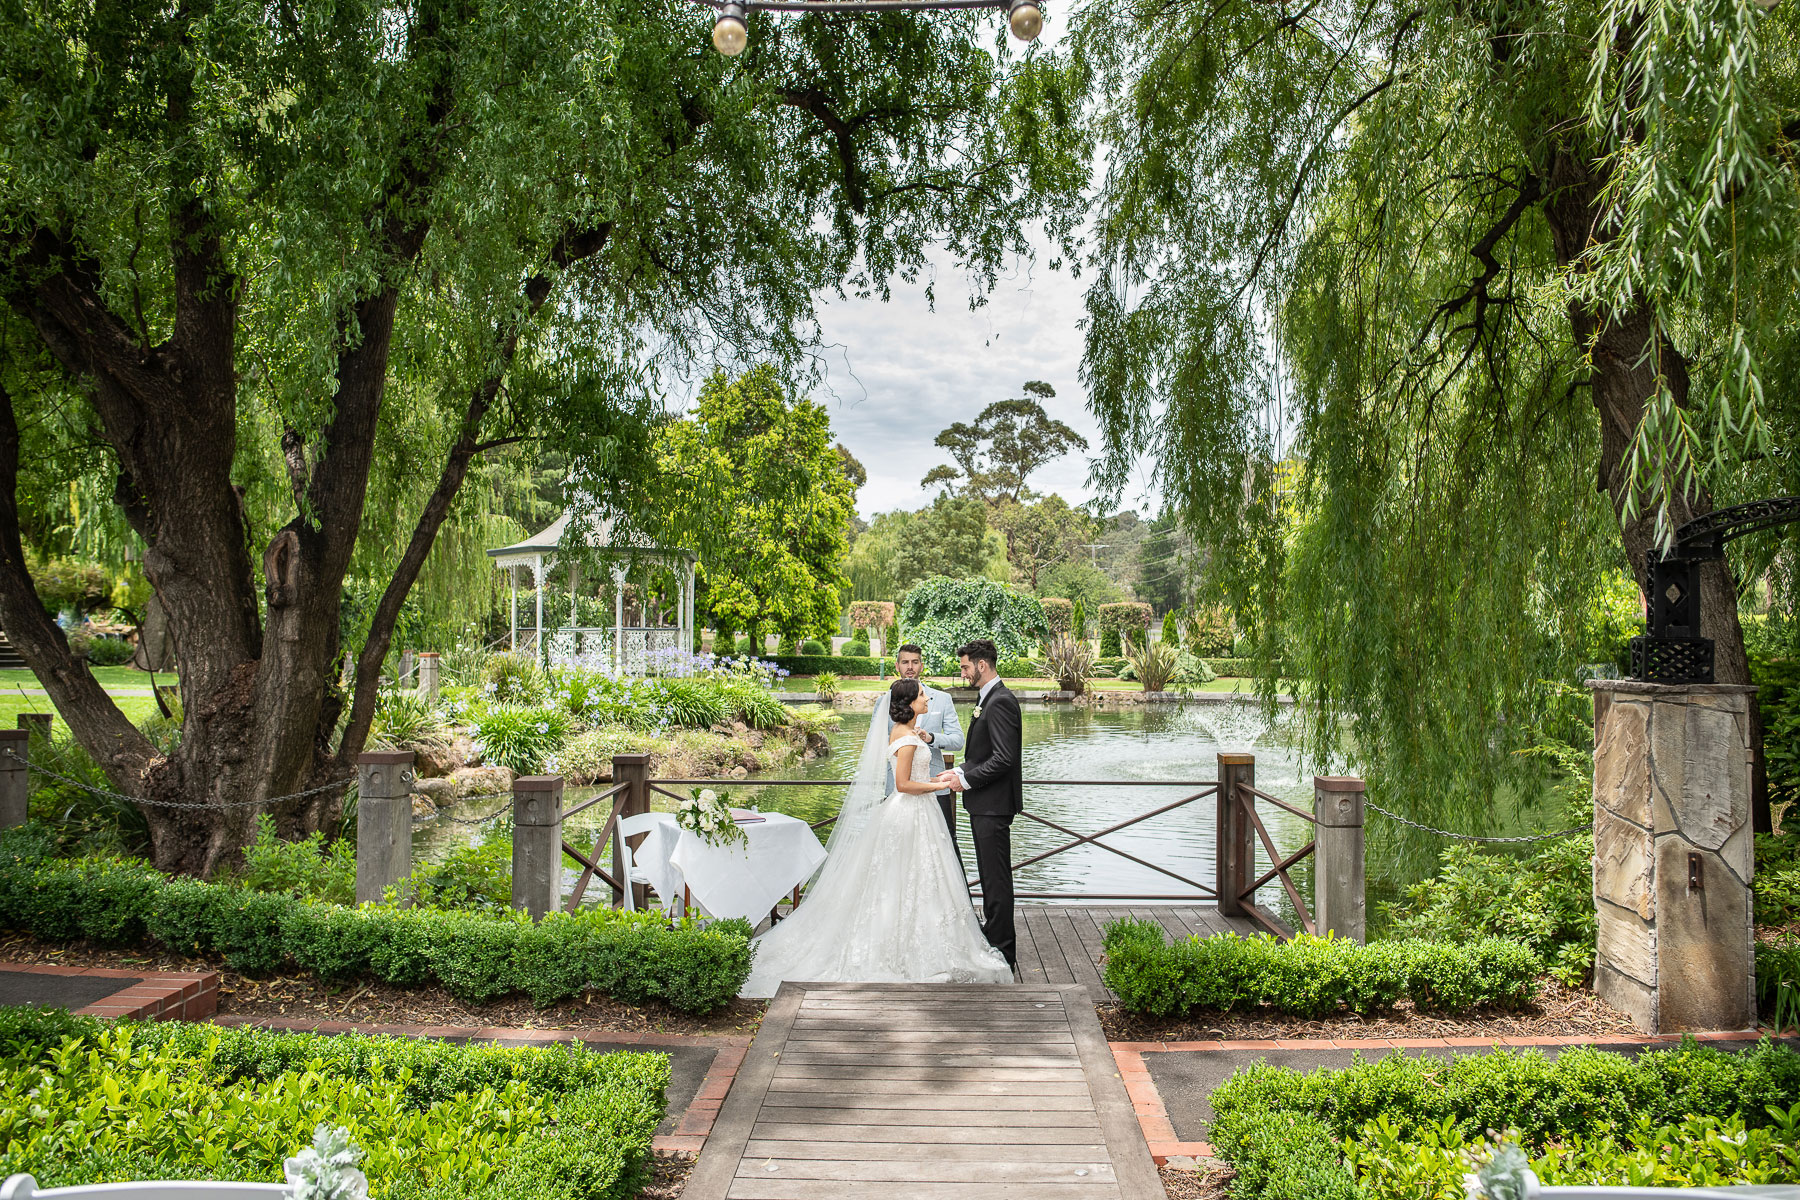 Ballara Receptions - Melbourne Wedding Lakeside Jetty Ceremony